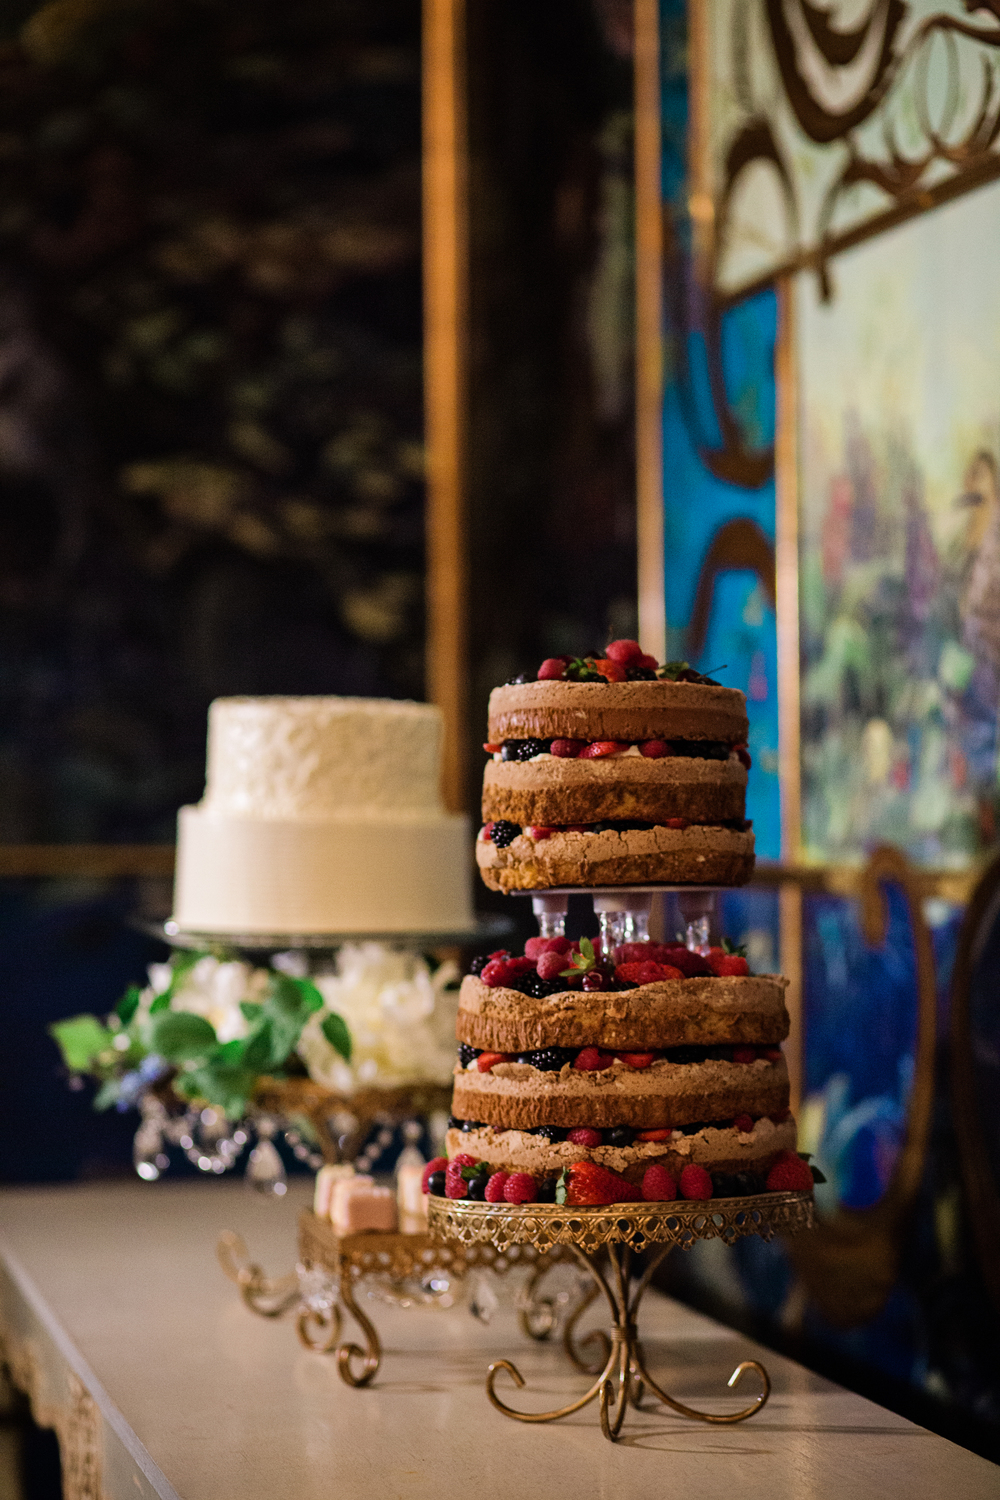 theruins.net | Alante Photography | Wedding Cakes in Seattle | The Ruins Pastry Chef | Opulent Treasures Cake Stands